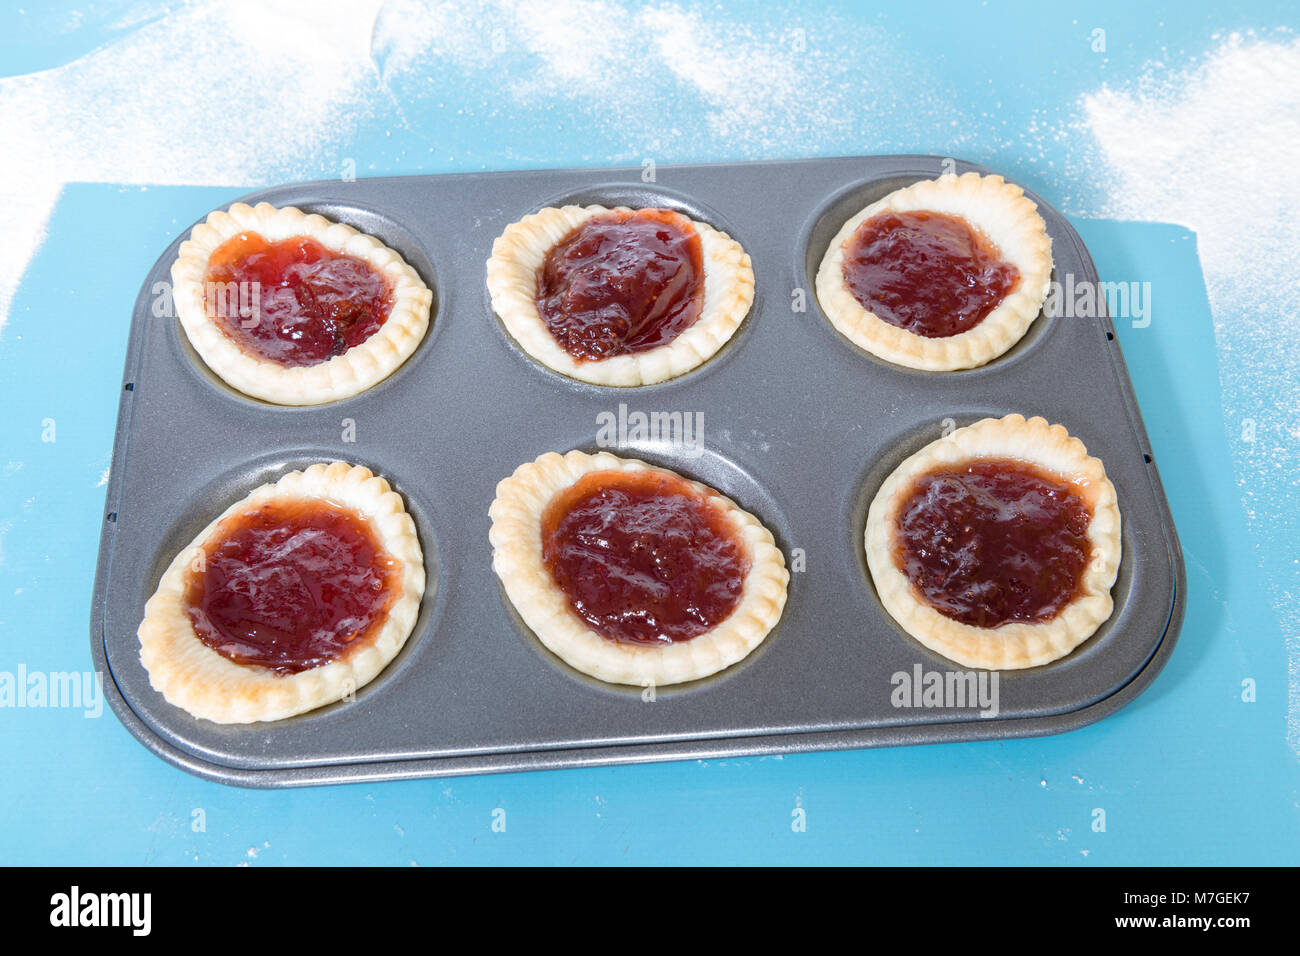 Jam tarts homemade baking tray on a blue formica worktop. - Stock Image